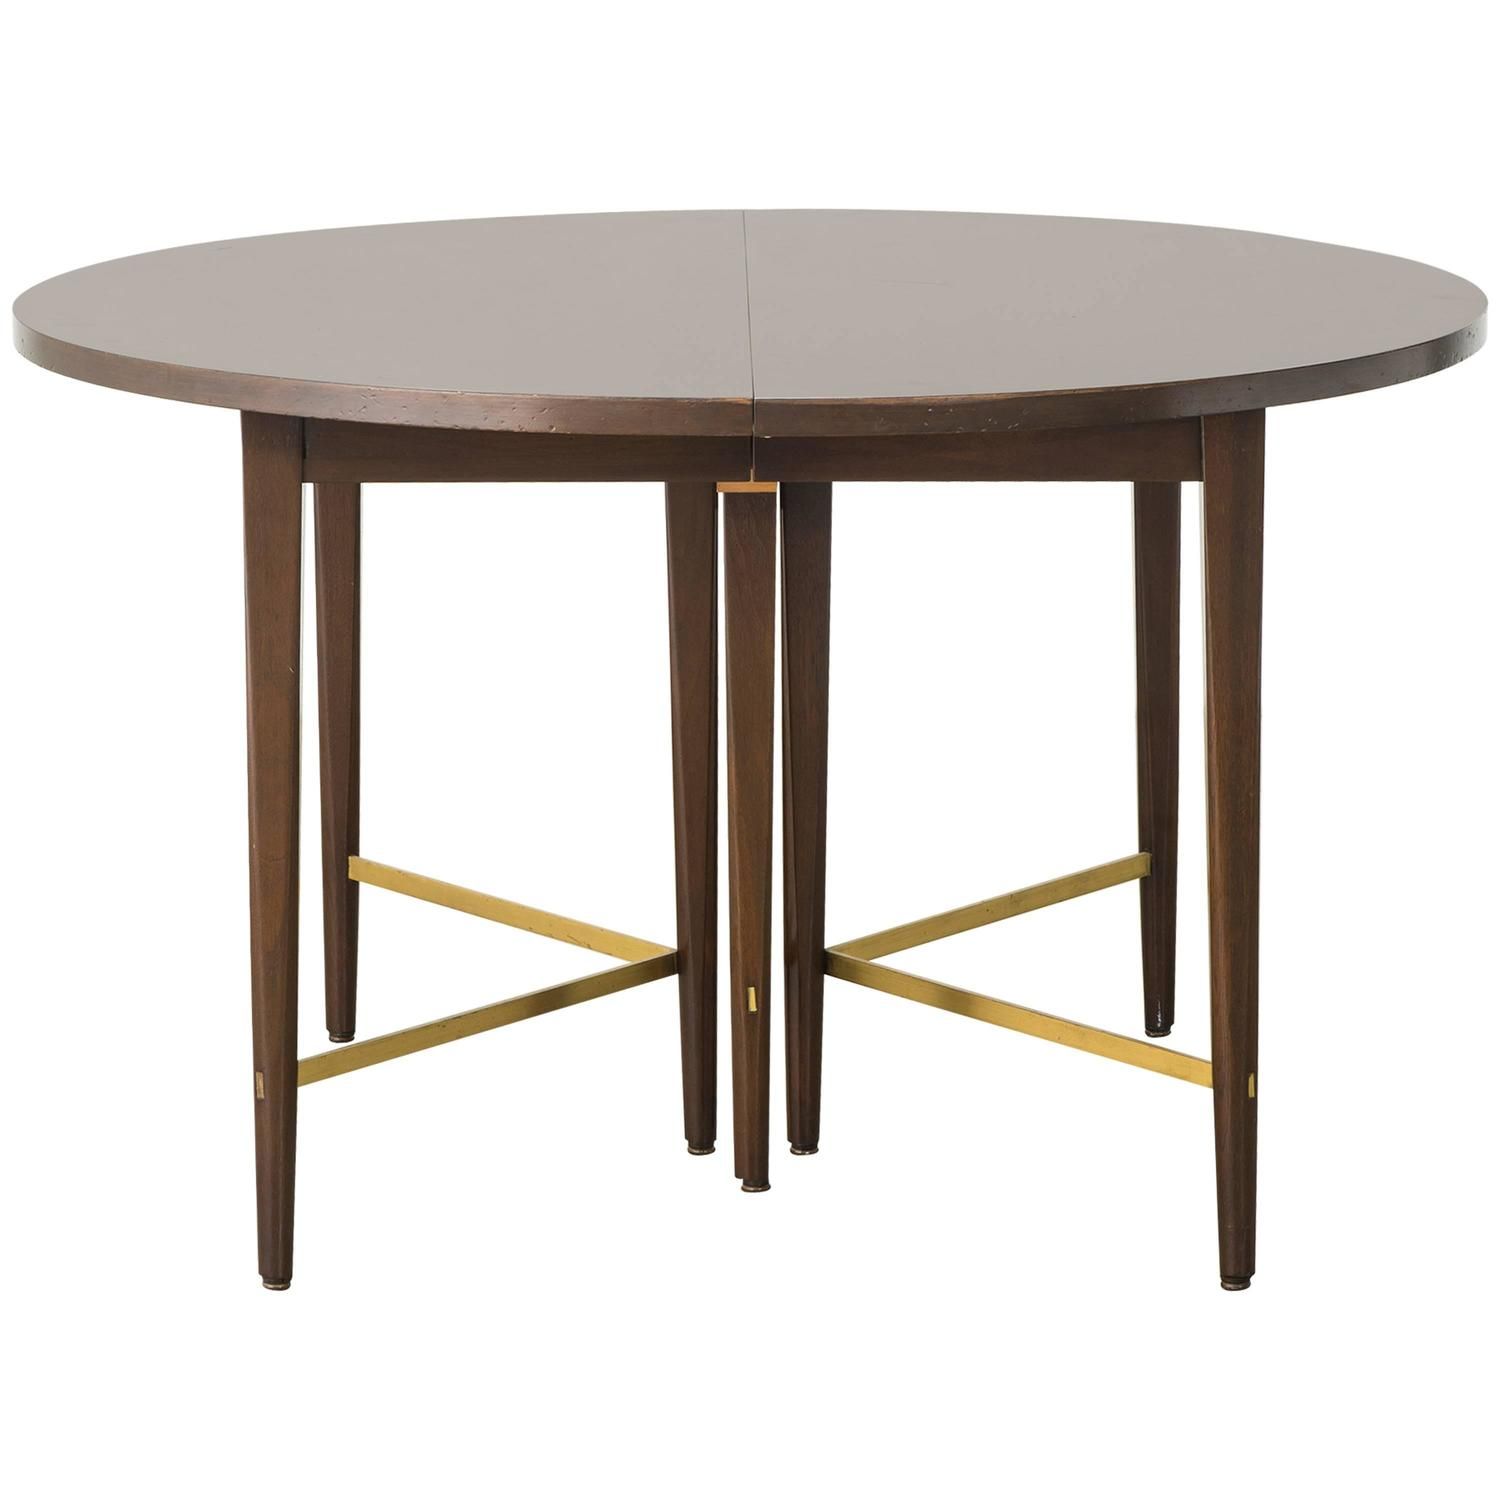 Irwin Dinette Table By Paul McCobb For Calvin 1950s At 1stdibs